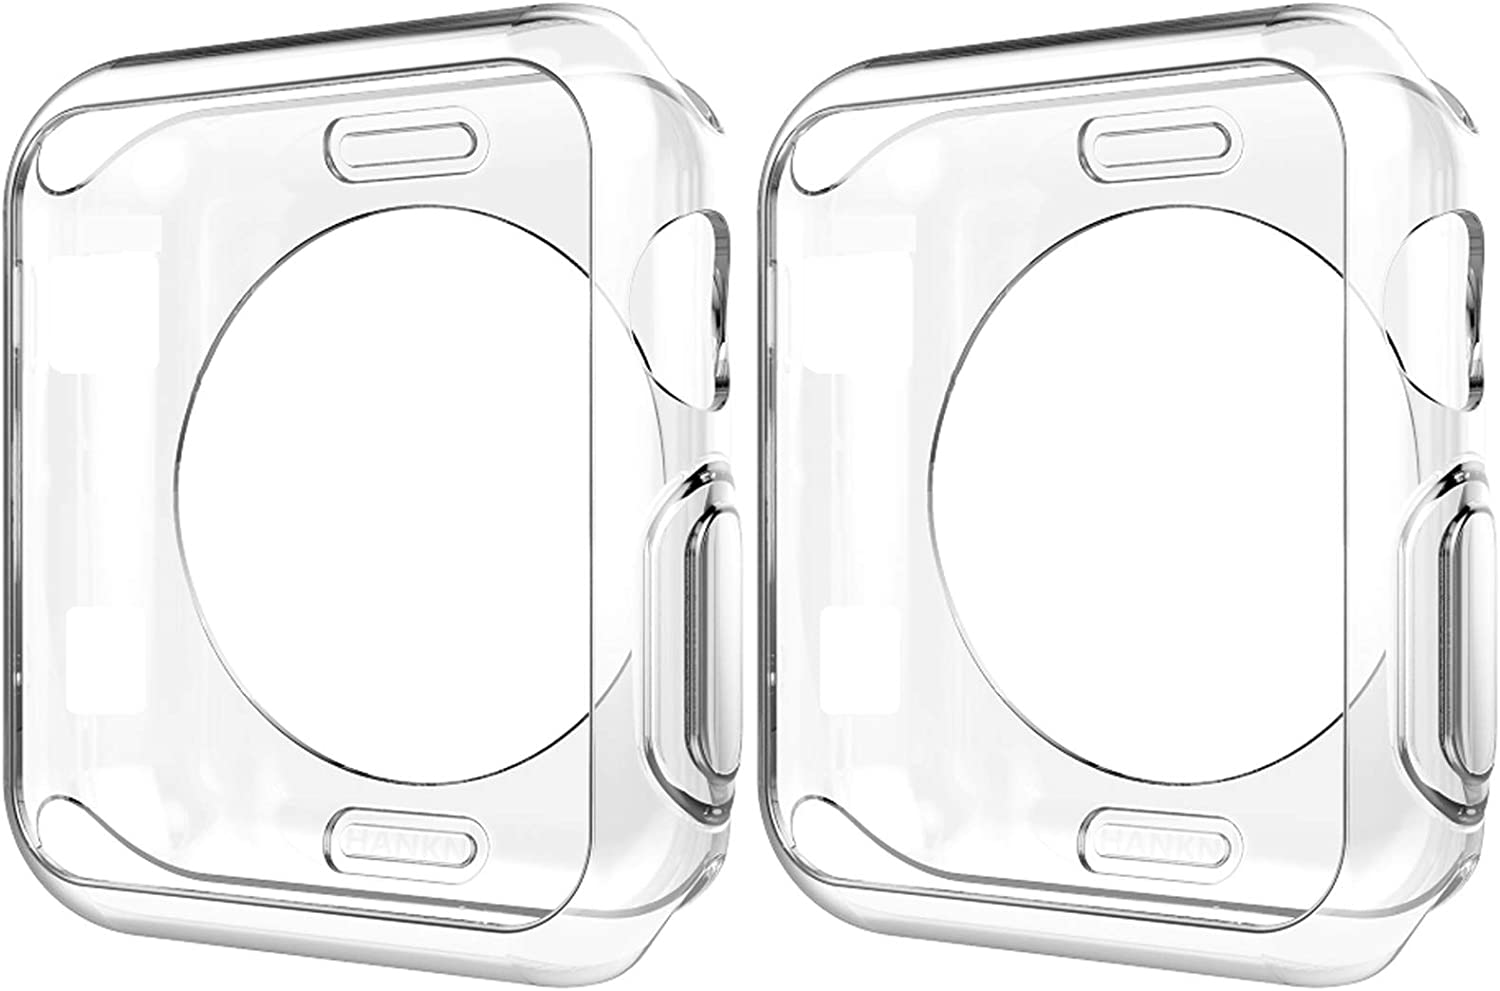 HANKN 2 Pack Clear Case for Apple Watch Series 3 2 1 Case, Soft TPU Cover Shell Shockproof Iwatch Bumper [No Front Screen Protector] (Clear, 42mm)